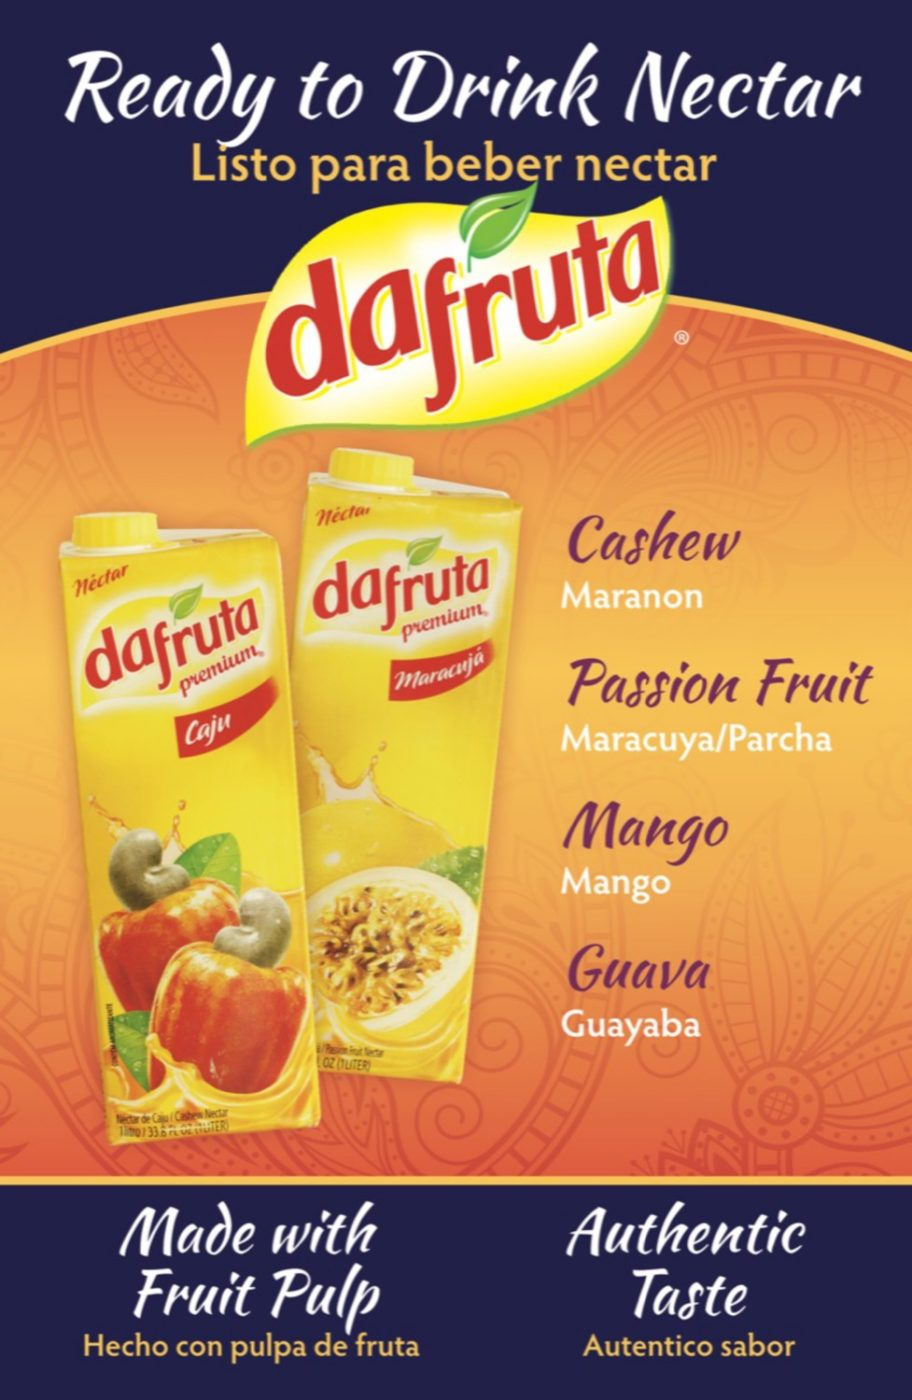 about-dafruta